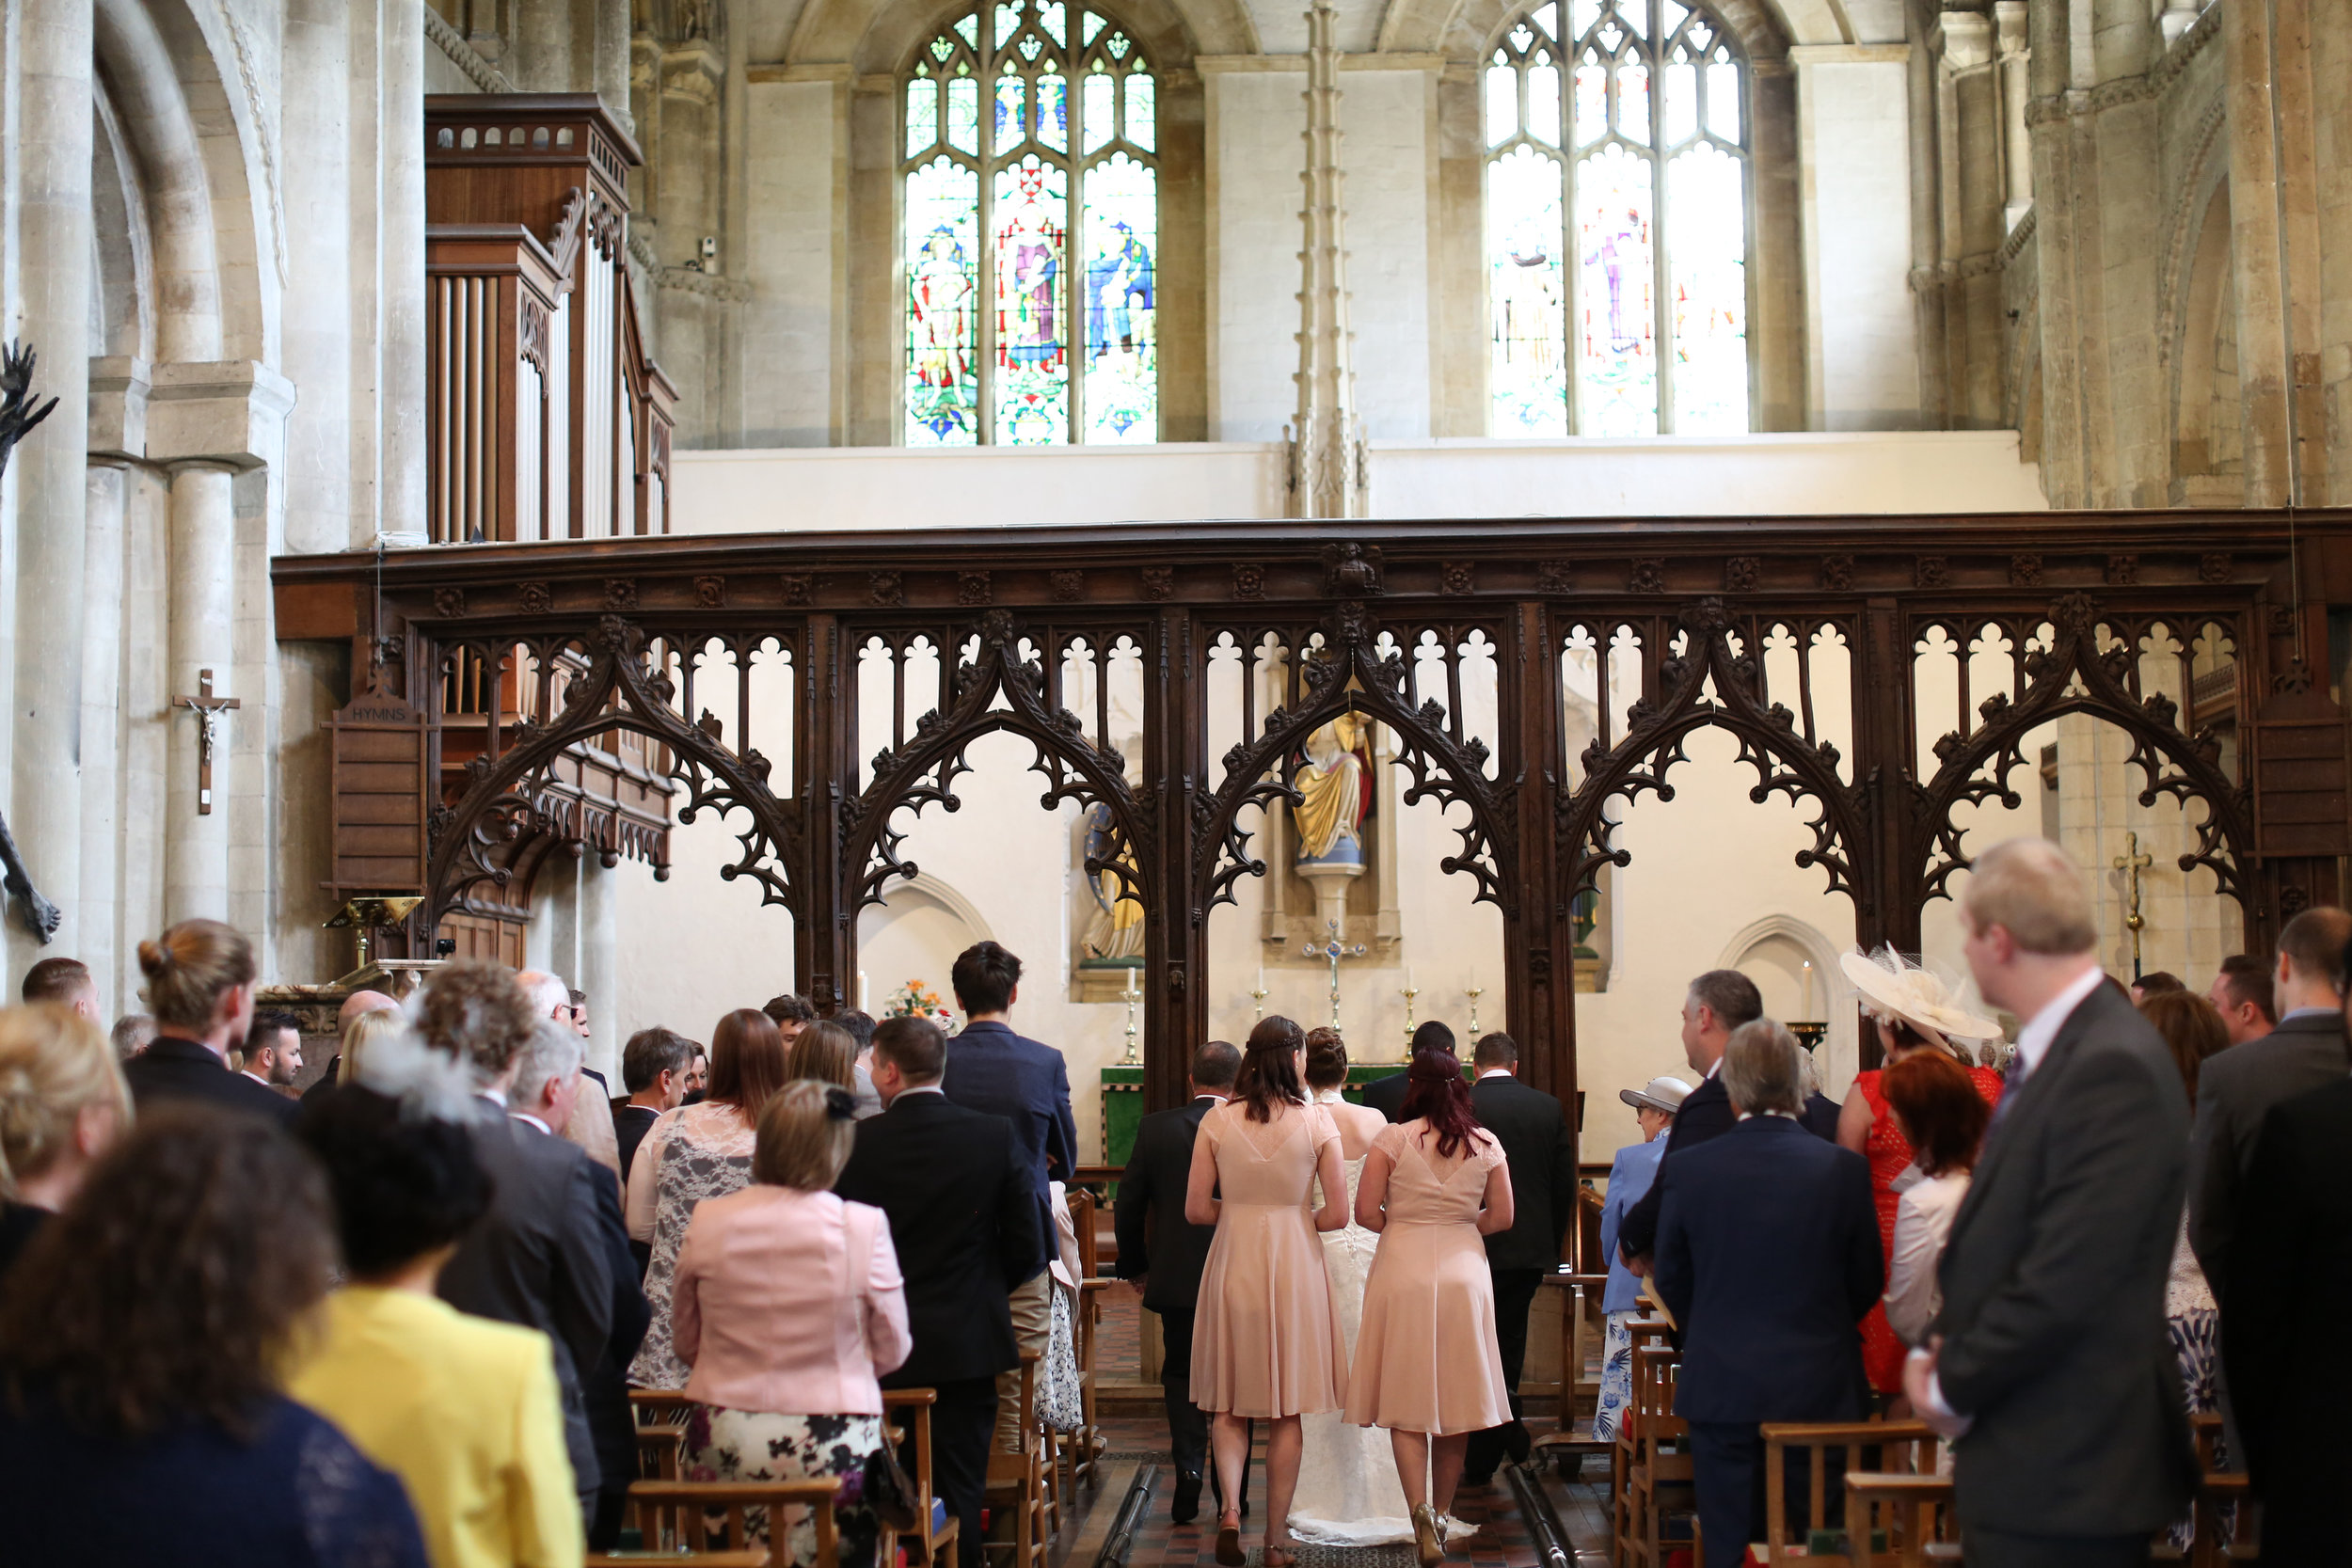 JELLYFISH WEDDING PHOTOGRAPHY THE PRIORY ST PETER CHURCH DUNSTABLE (13).jpg